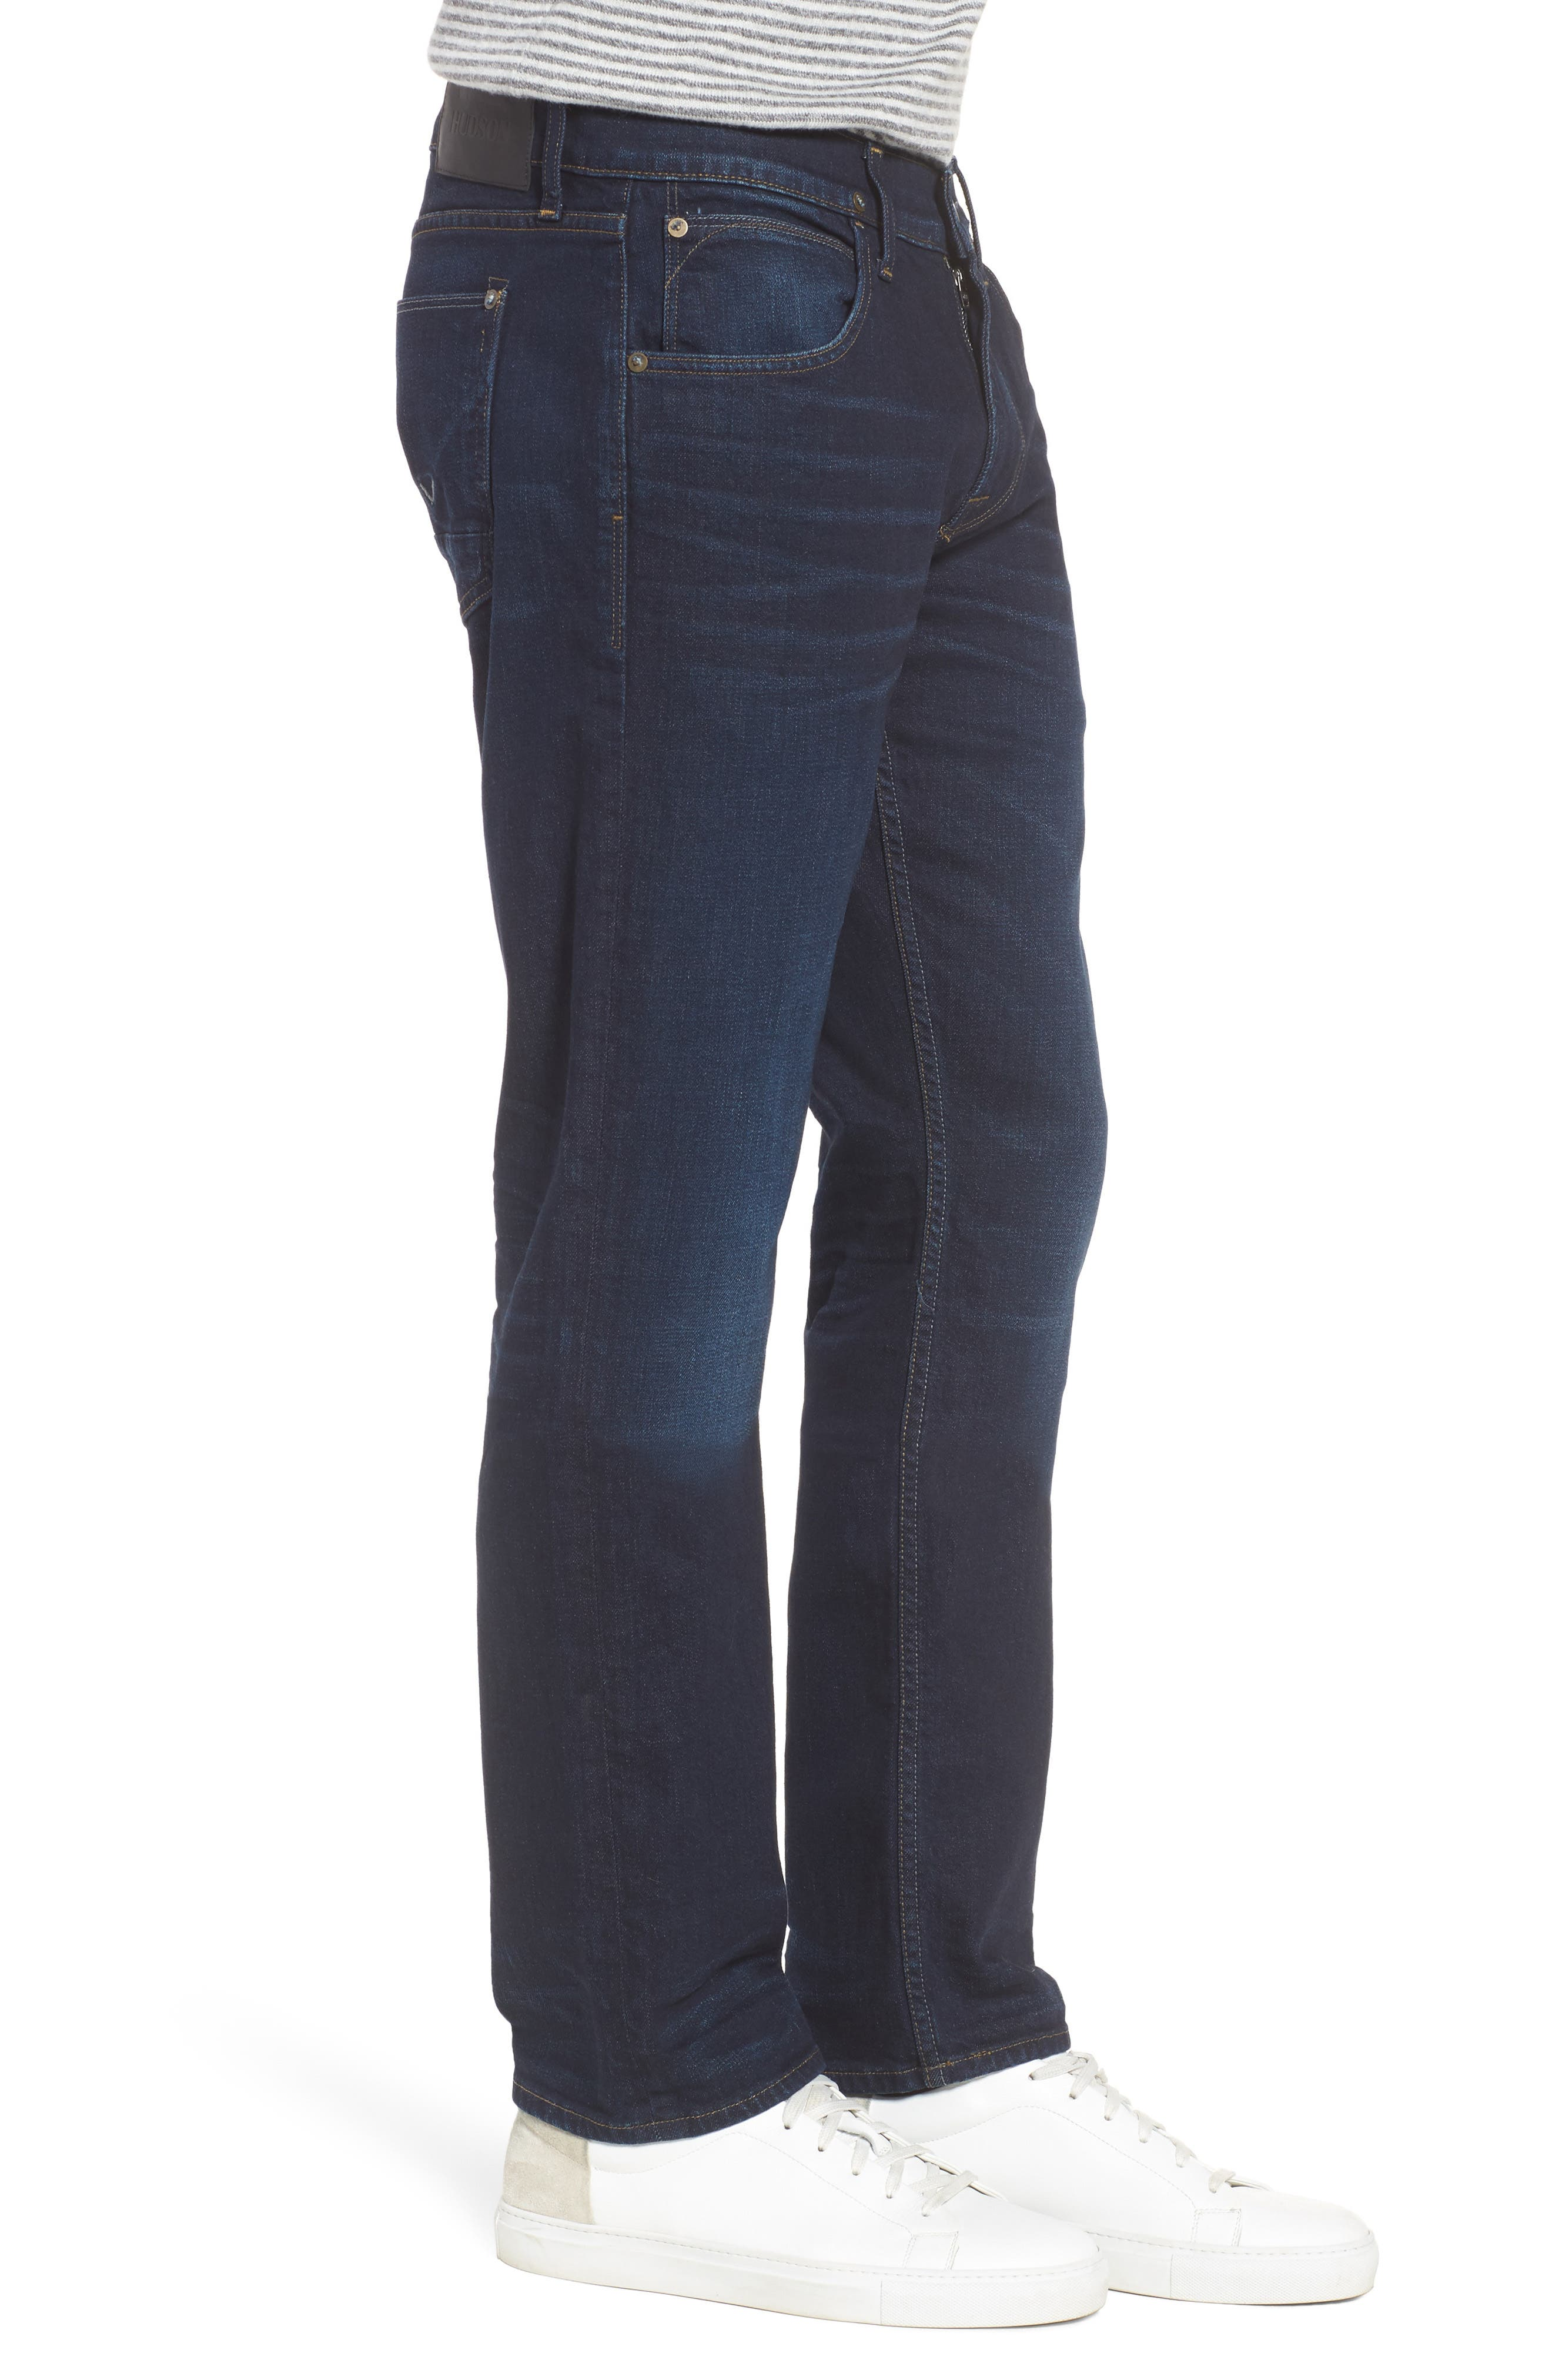 Byron Slim Straight Fit Jeans,                             Alternate thumbnail 3, color,                             Session